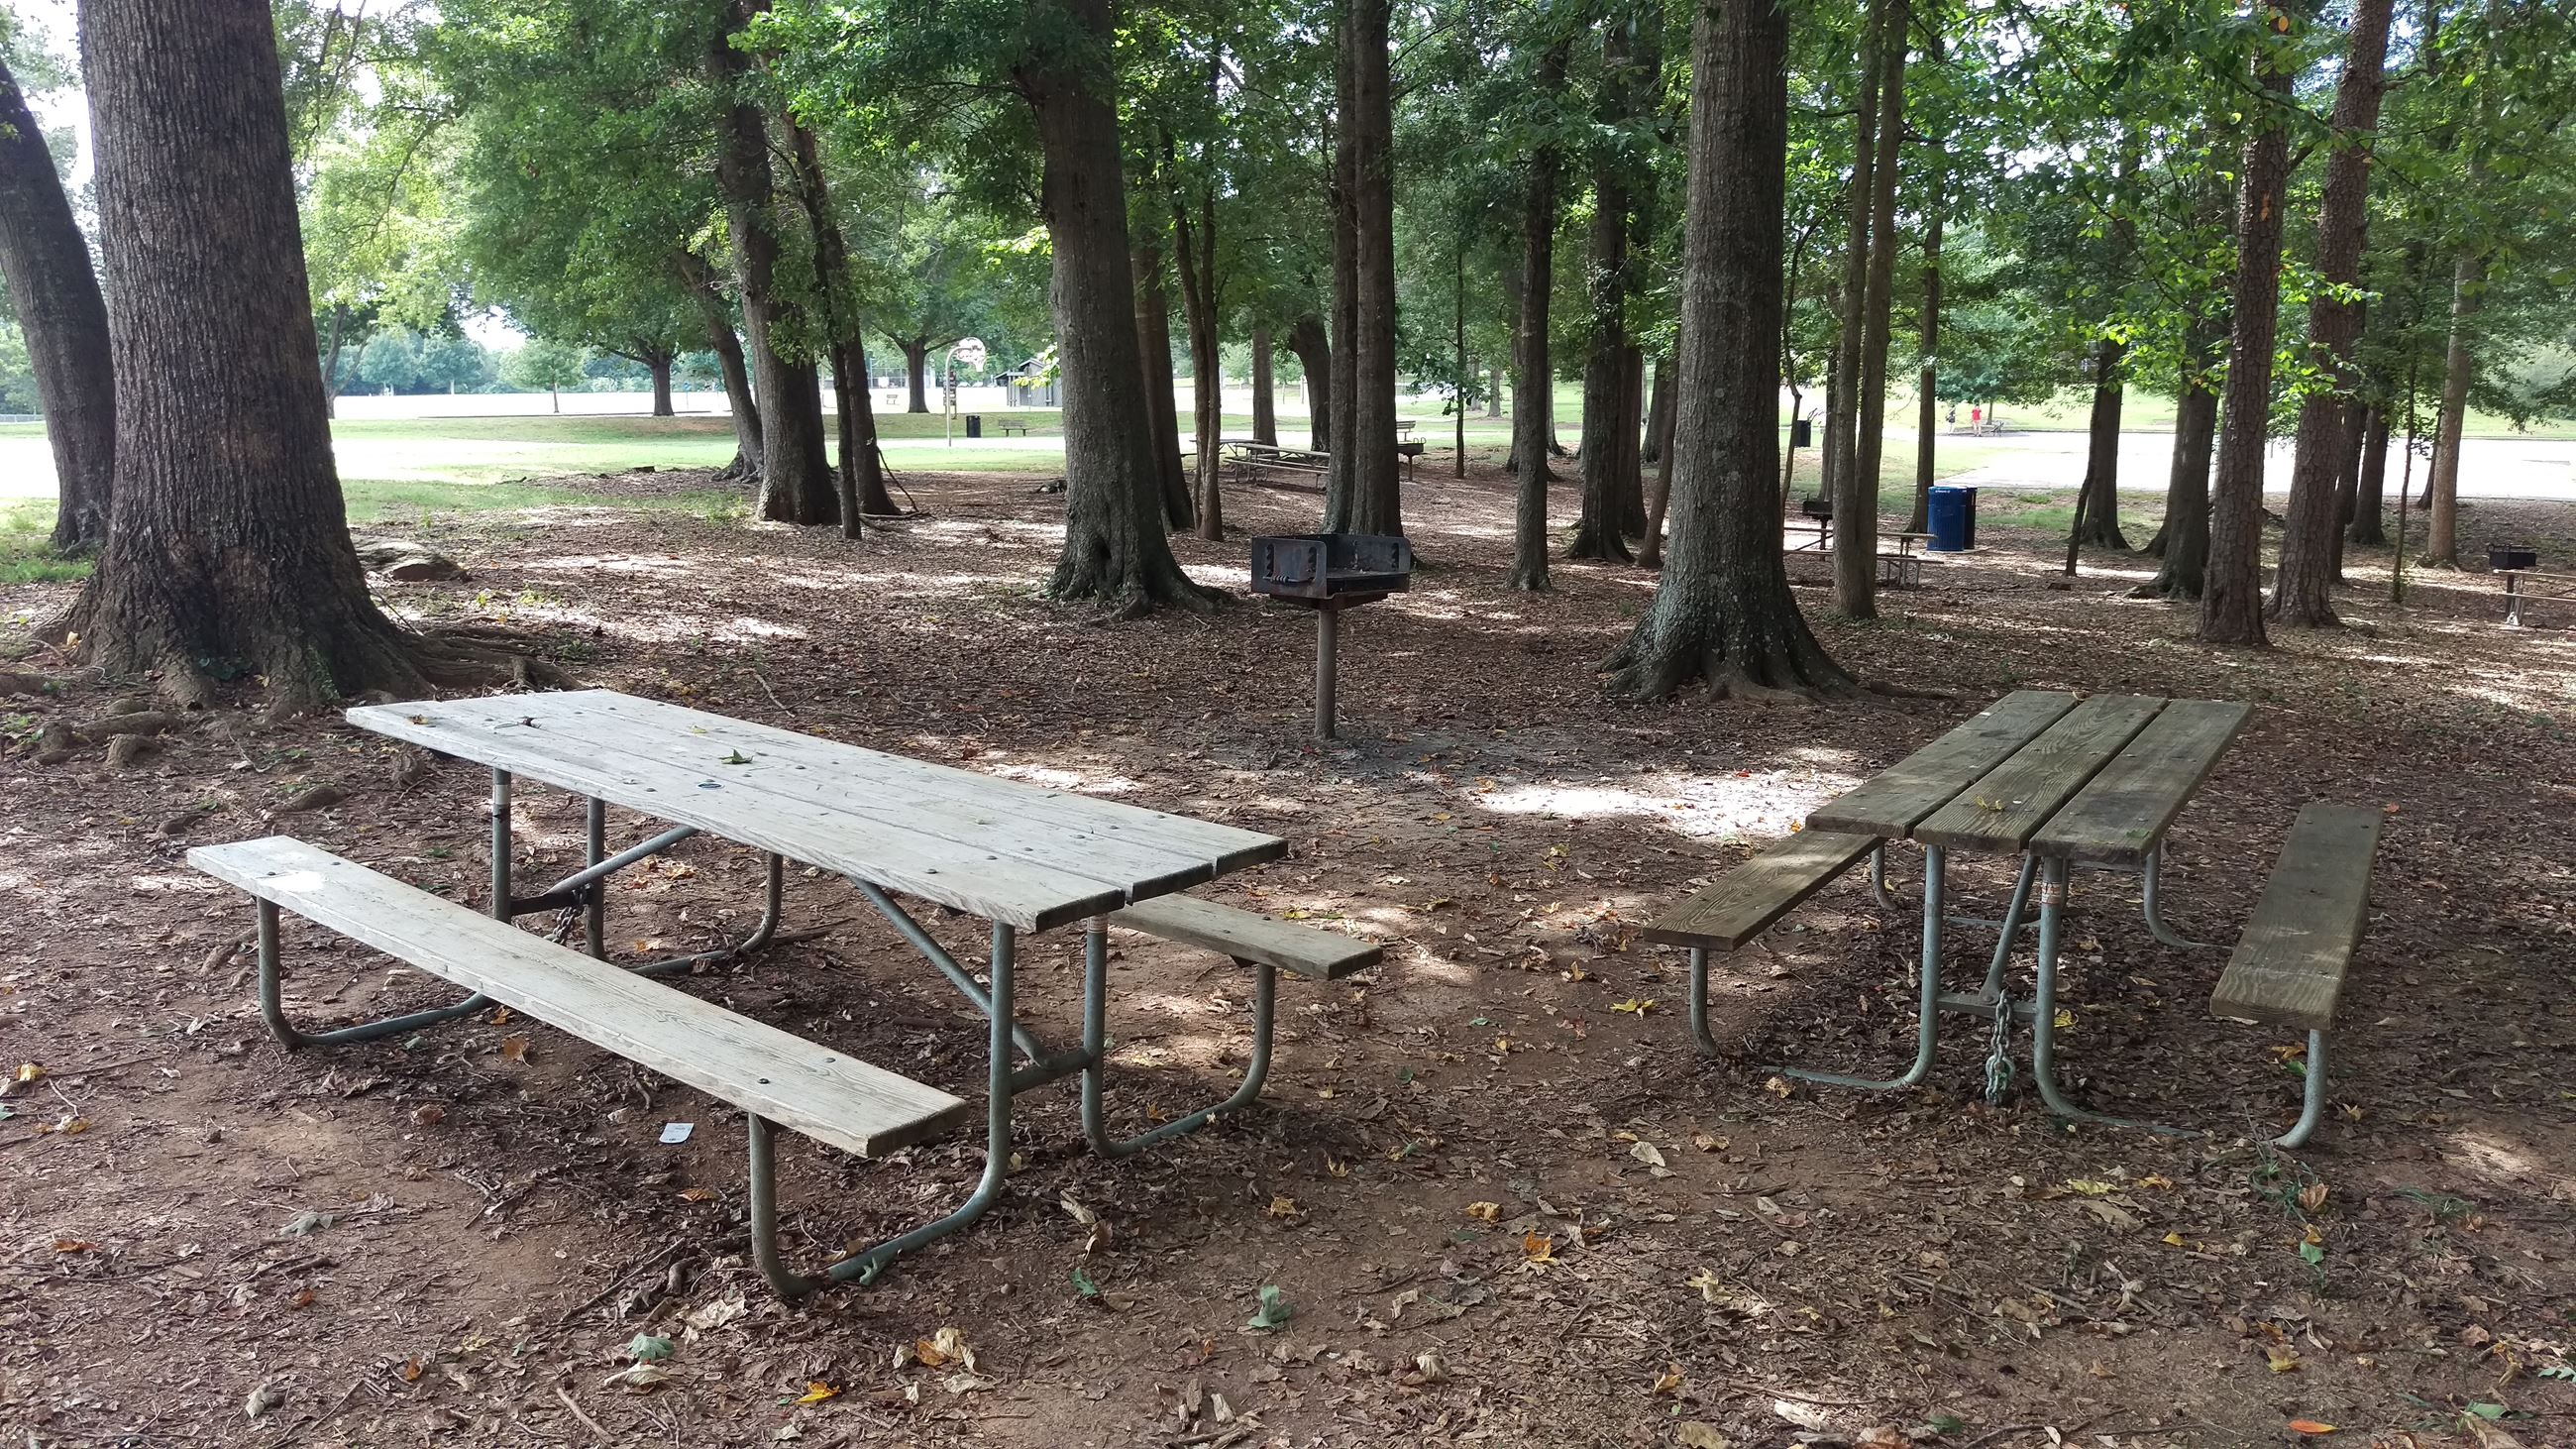 Photo of Picnic Area 3 at Sandy Creek Park.